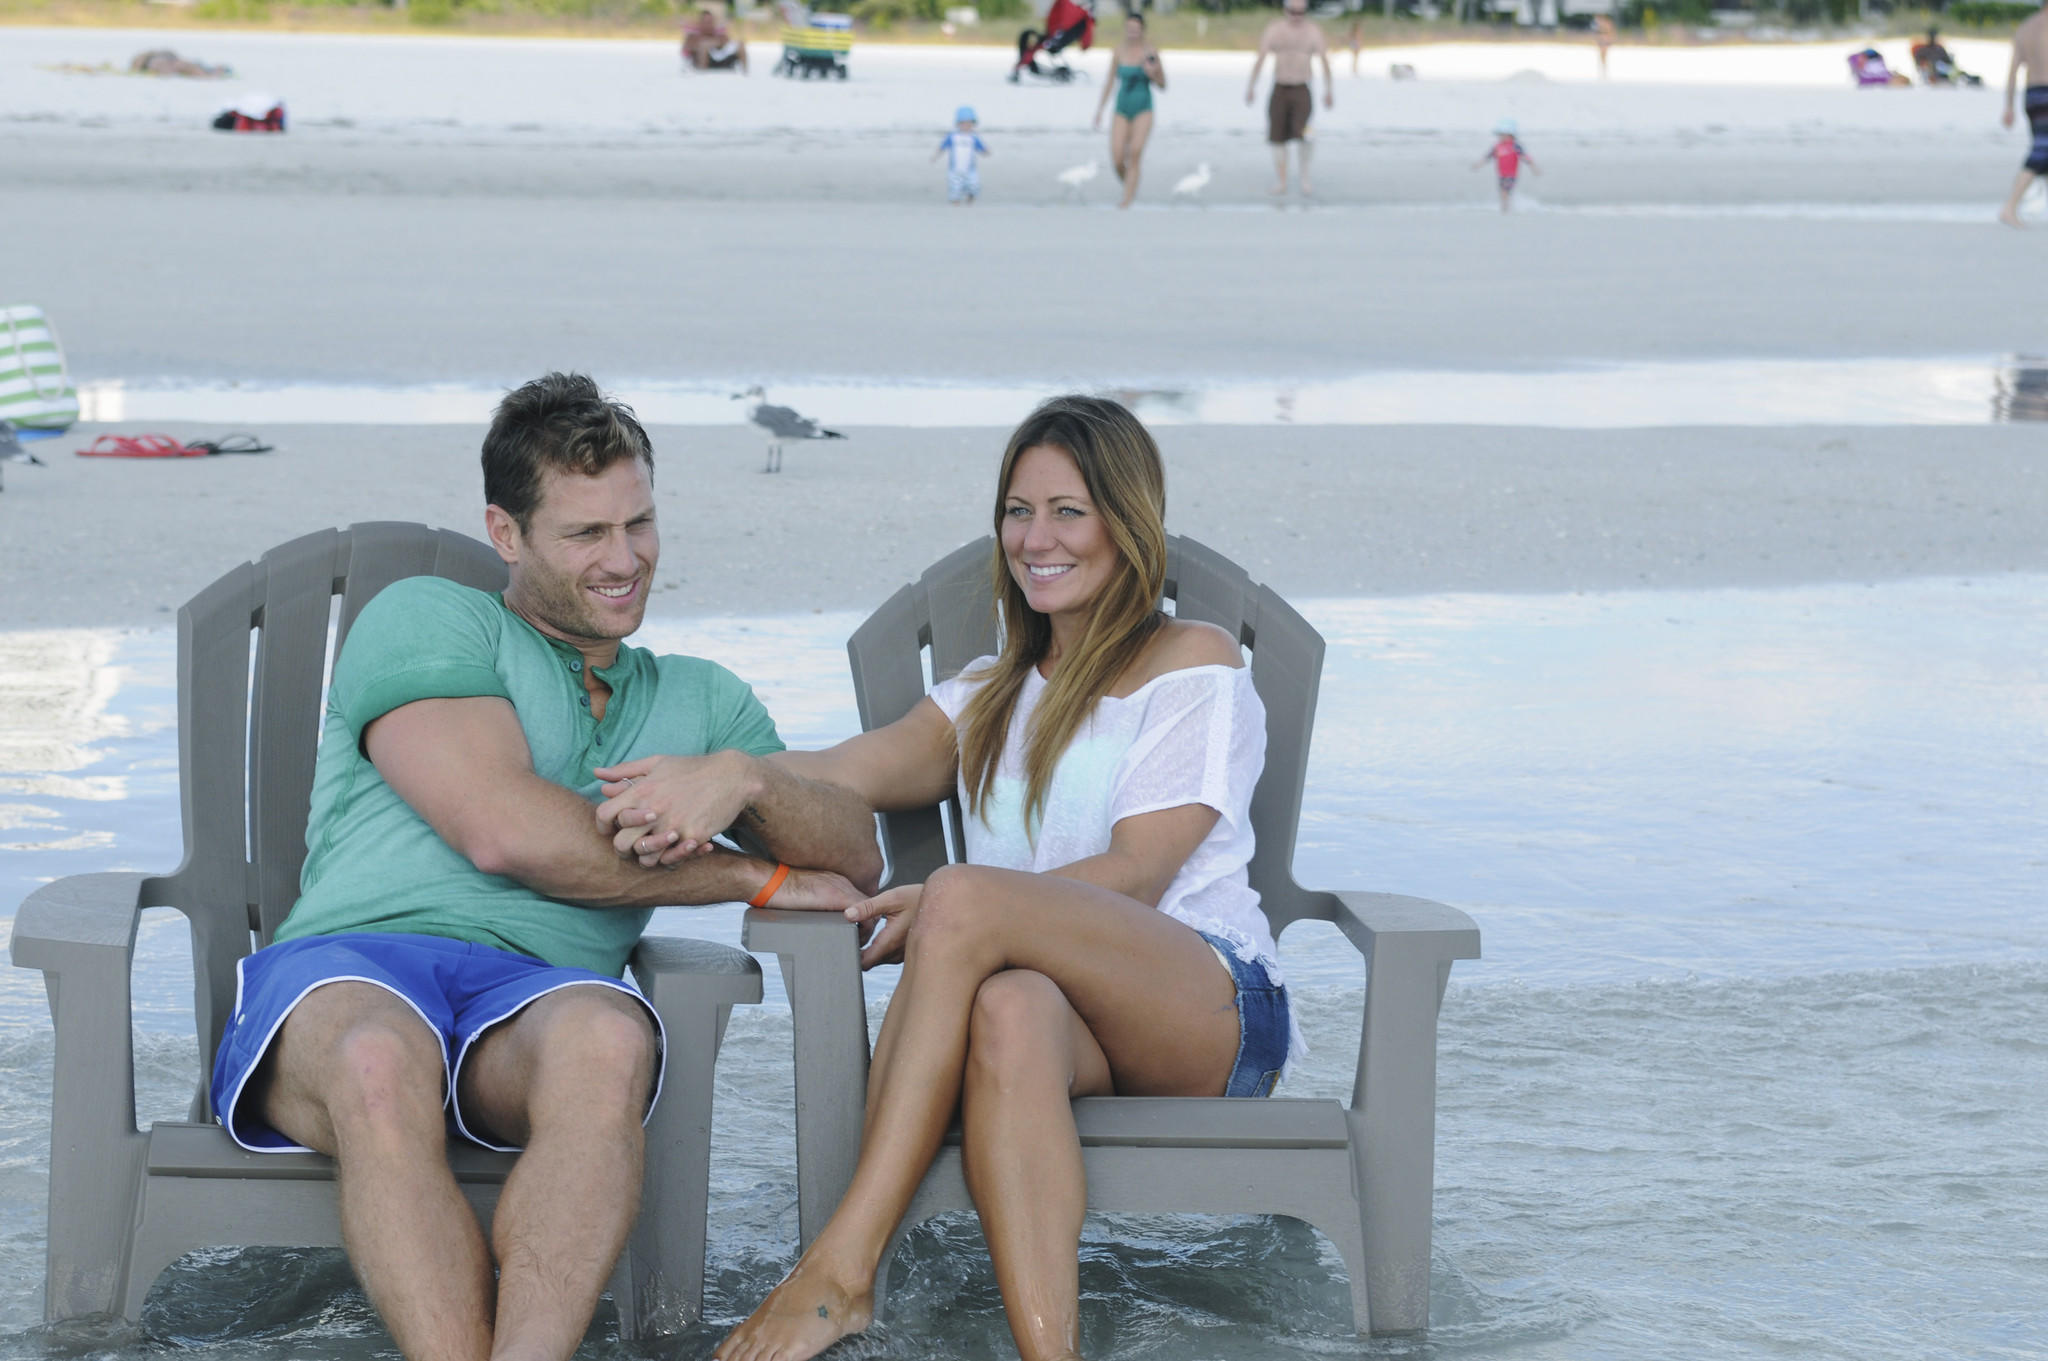 """On """"The Bachelor,"""" Juan Pablo's emotional tour continues in Sarasota, Fla., as he meets up with single mom Renee."""